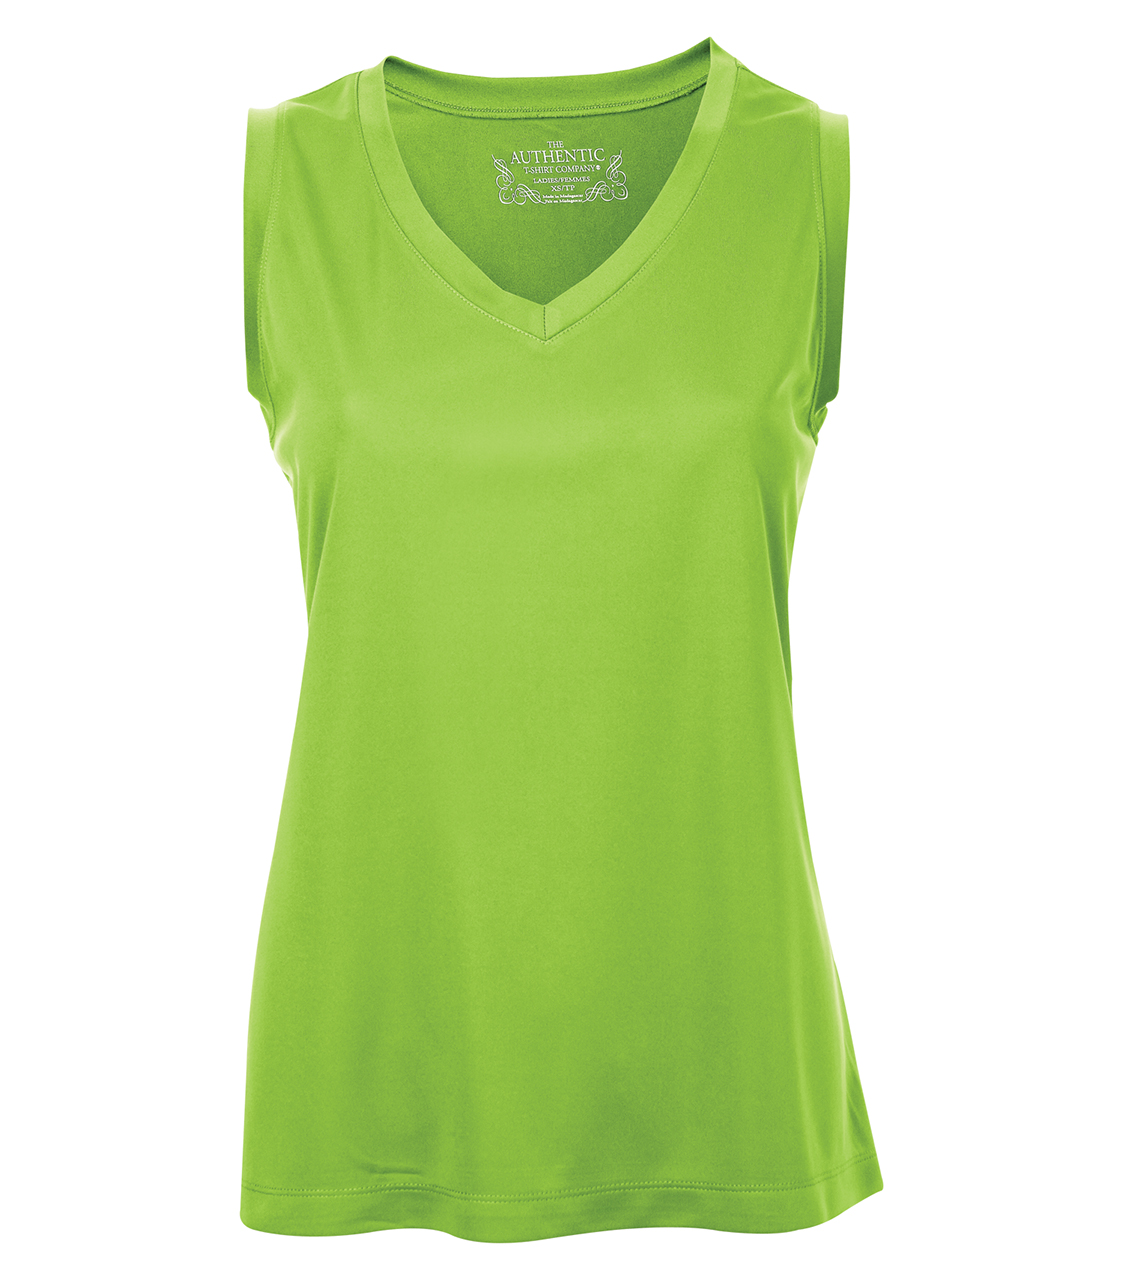 Picture of ATC Pro Team Sleeveless Ladies' Tee